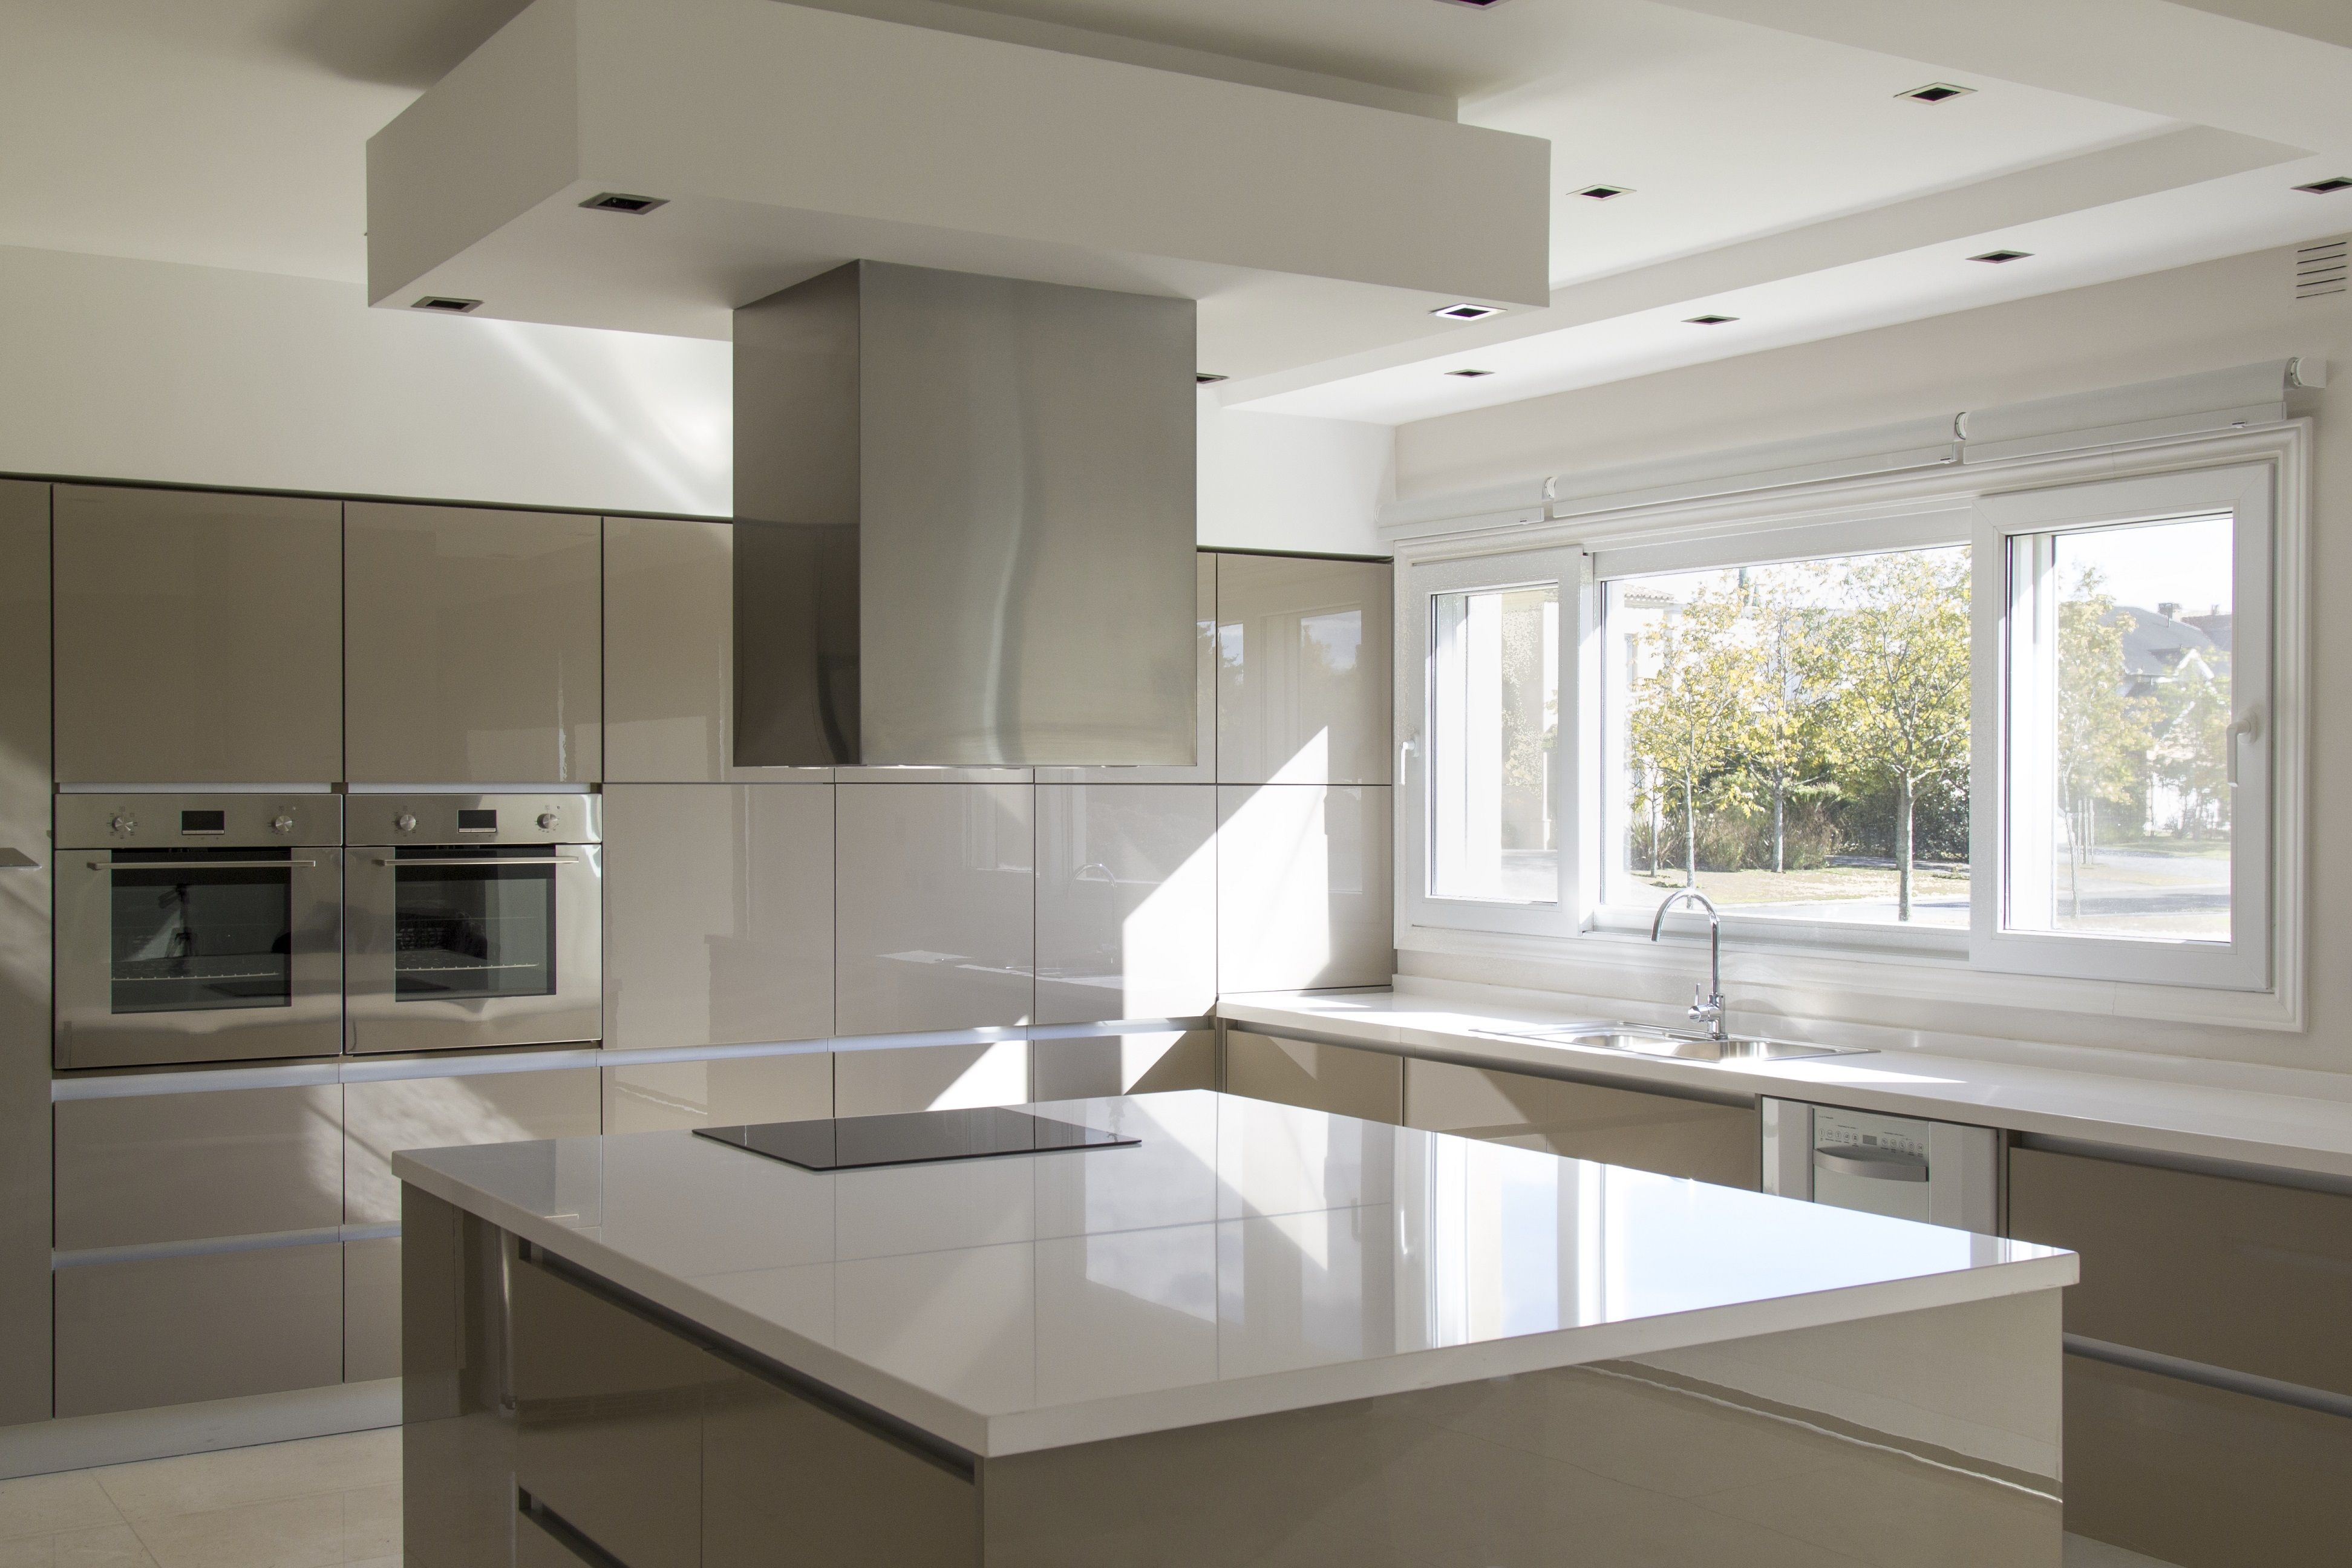 A Minimalist Kitchen That Will Last A Lifetime Mirror Reflective Quality And Uv Resistance Set Rauvisio High Glo Minimalist Kitchen High Gloss Kitchen Kitchen